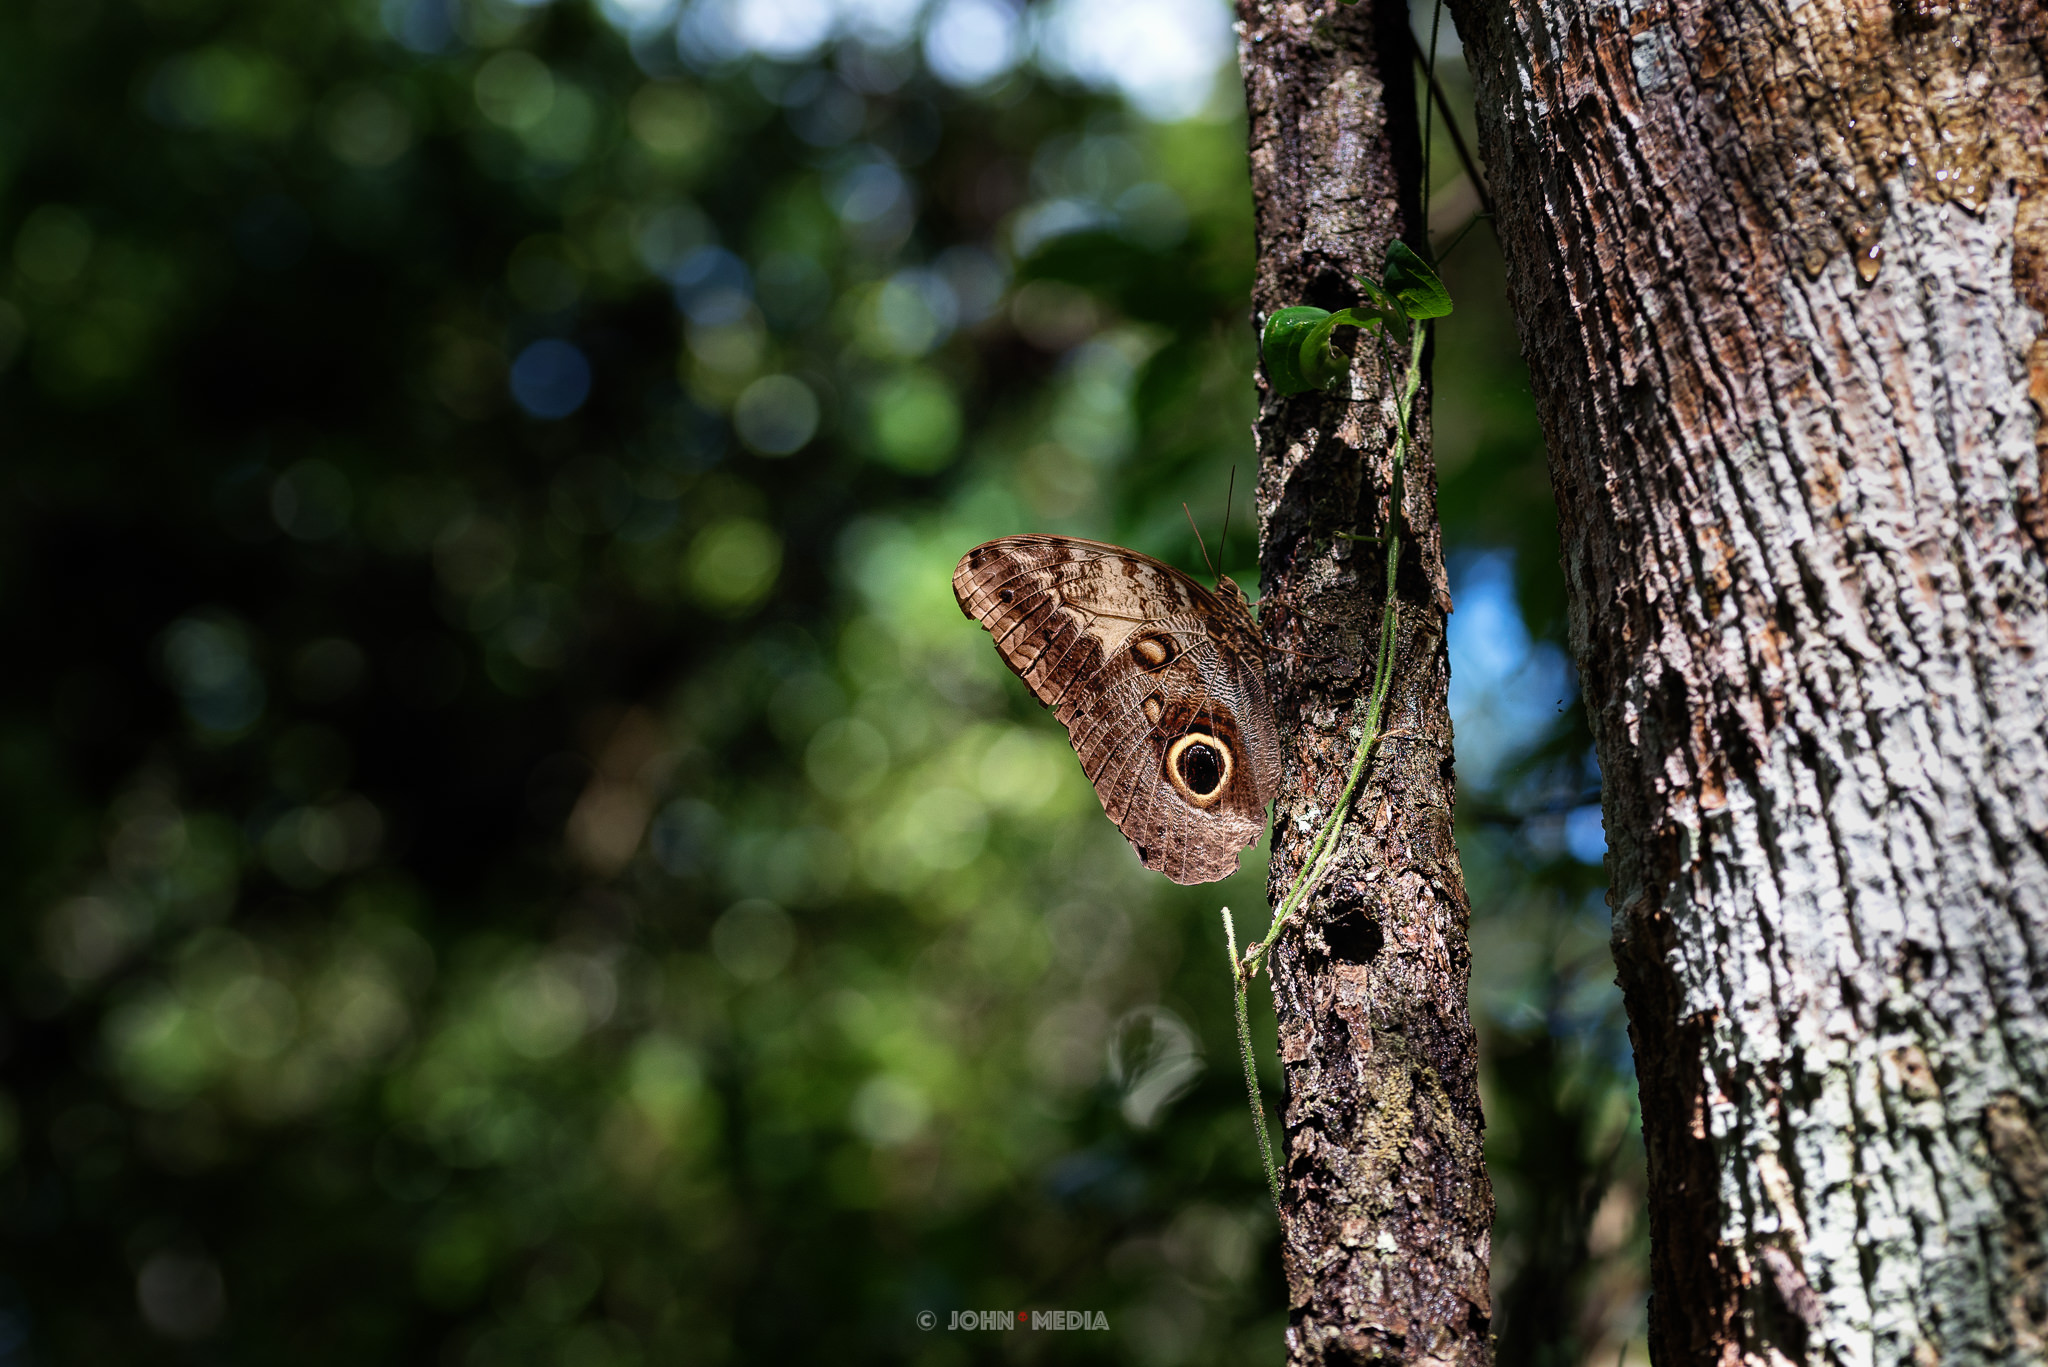 Polyphemus Moth in the Mexican jungle